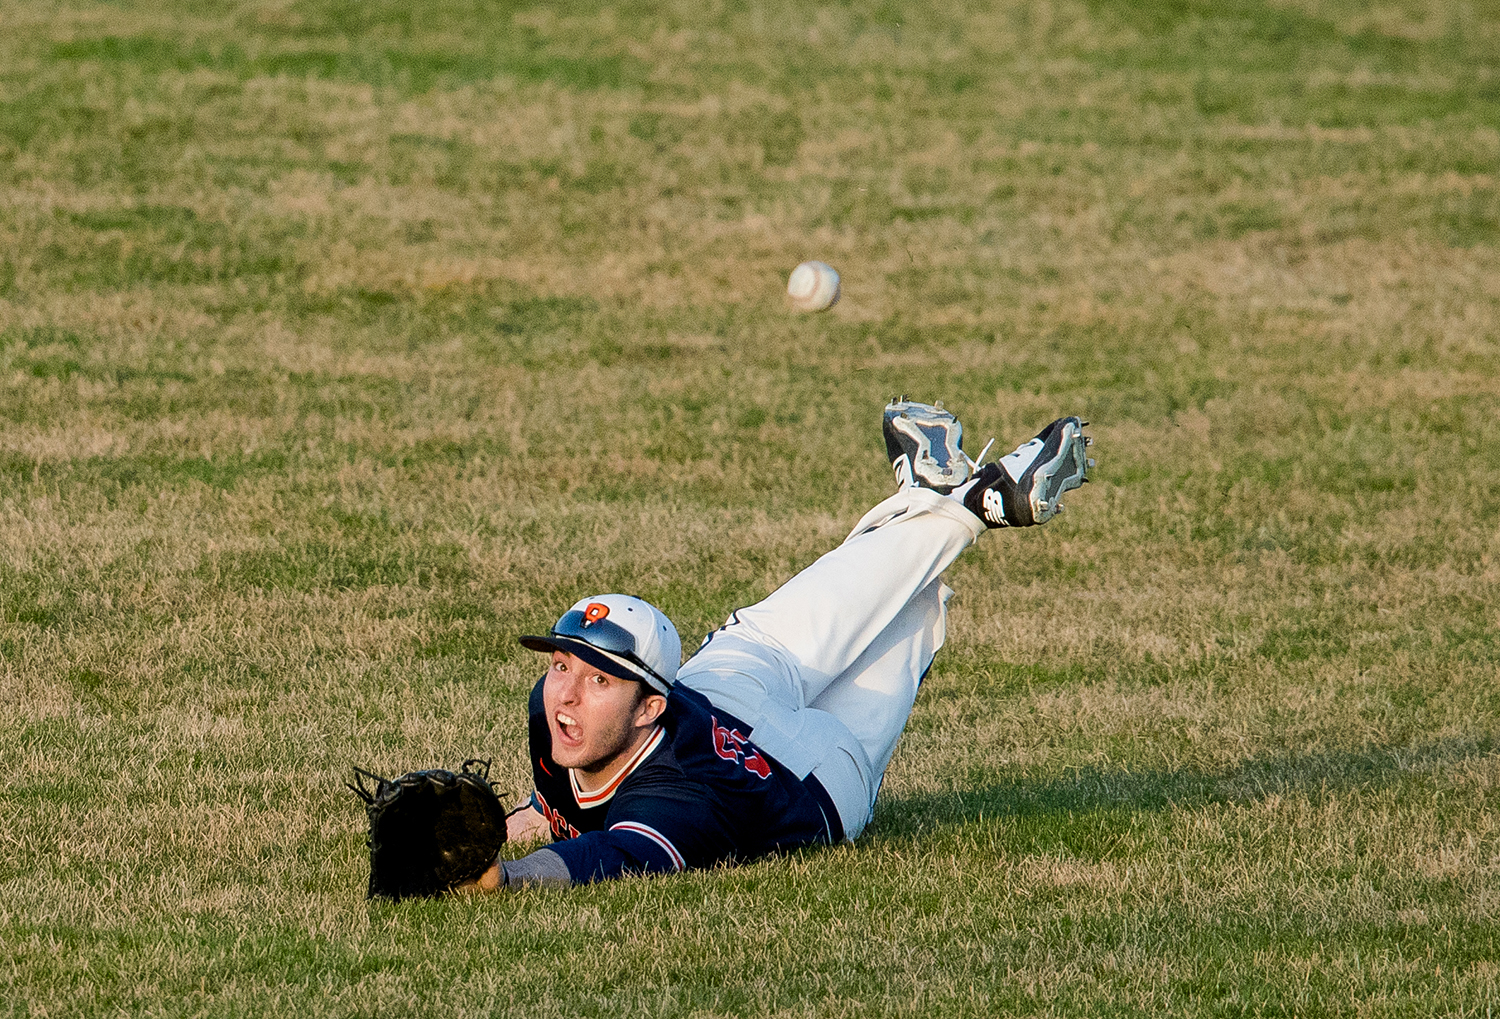 Rochester's David Yoggerst dives for pop fly at Robin Roberts Stadium Wednesday, March 27, 2019. [Ted Schurter/The State Journal-Register]